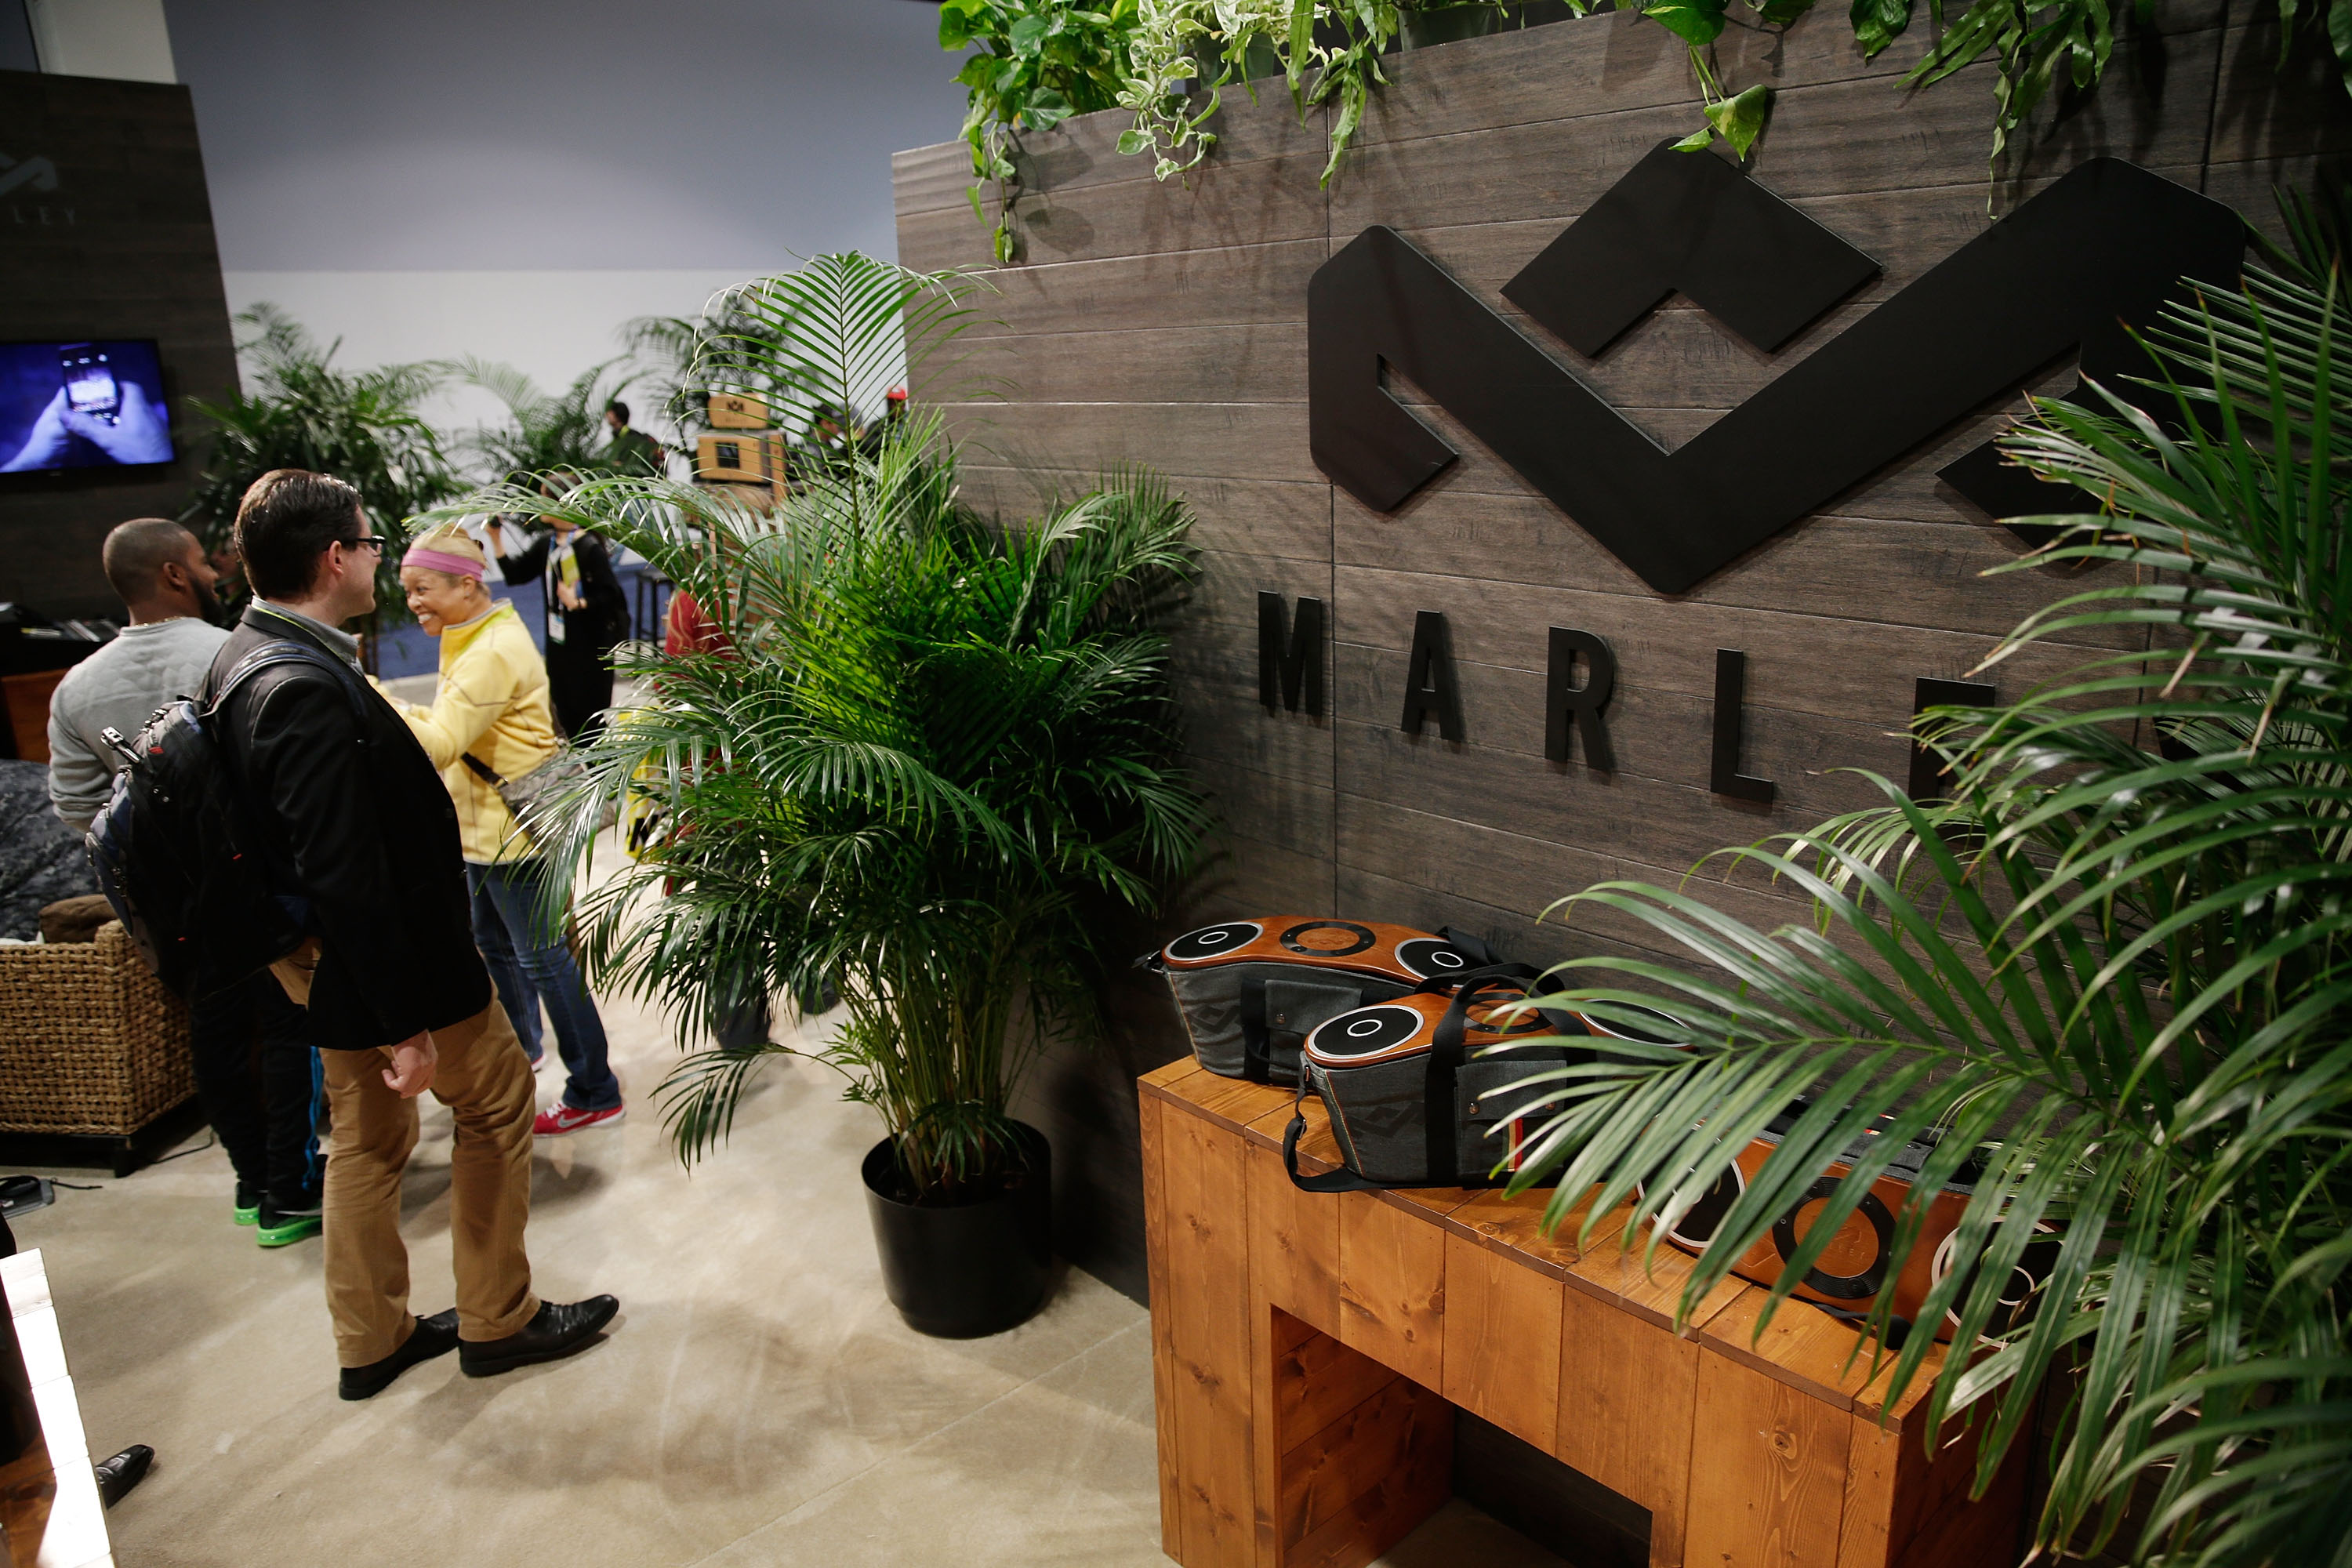 At a convention full of sterile, cookie-cutter displays, the House of Marley booth stood out with warm wood paneling, greenery and, of course, reggae sounds.